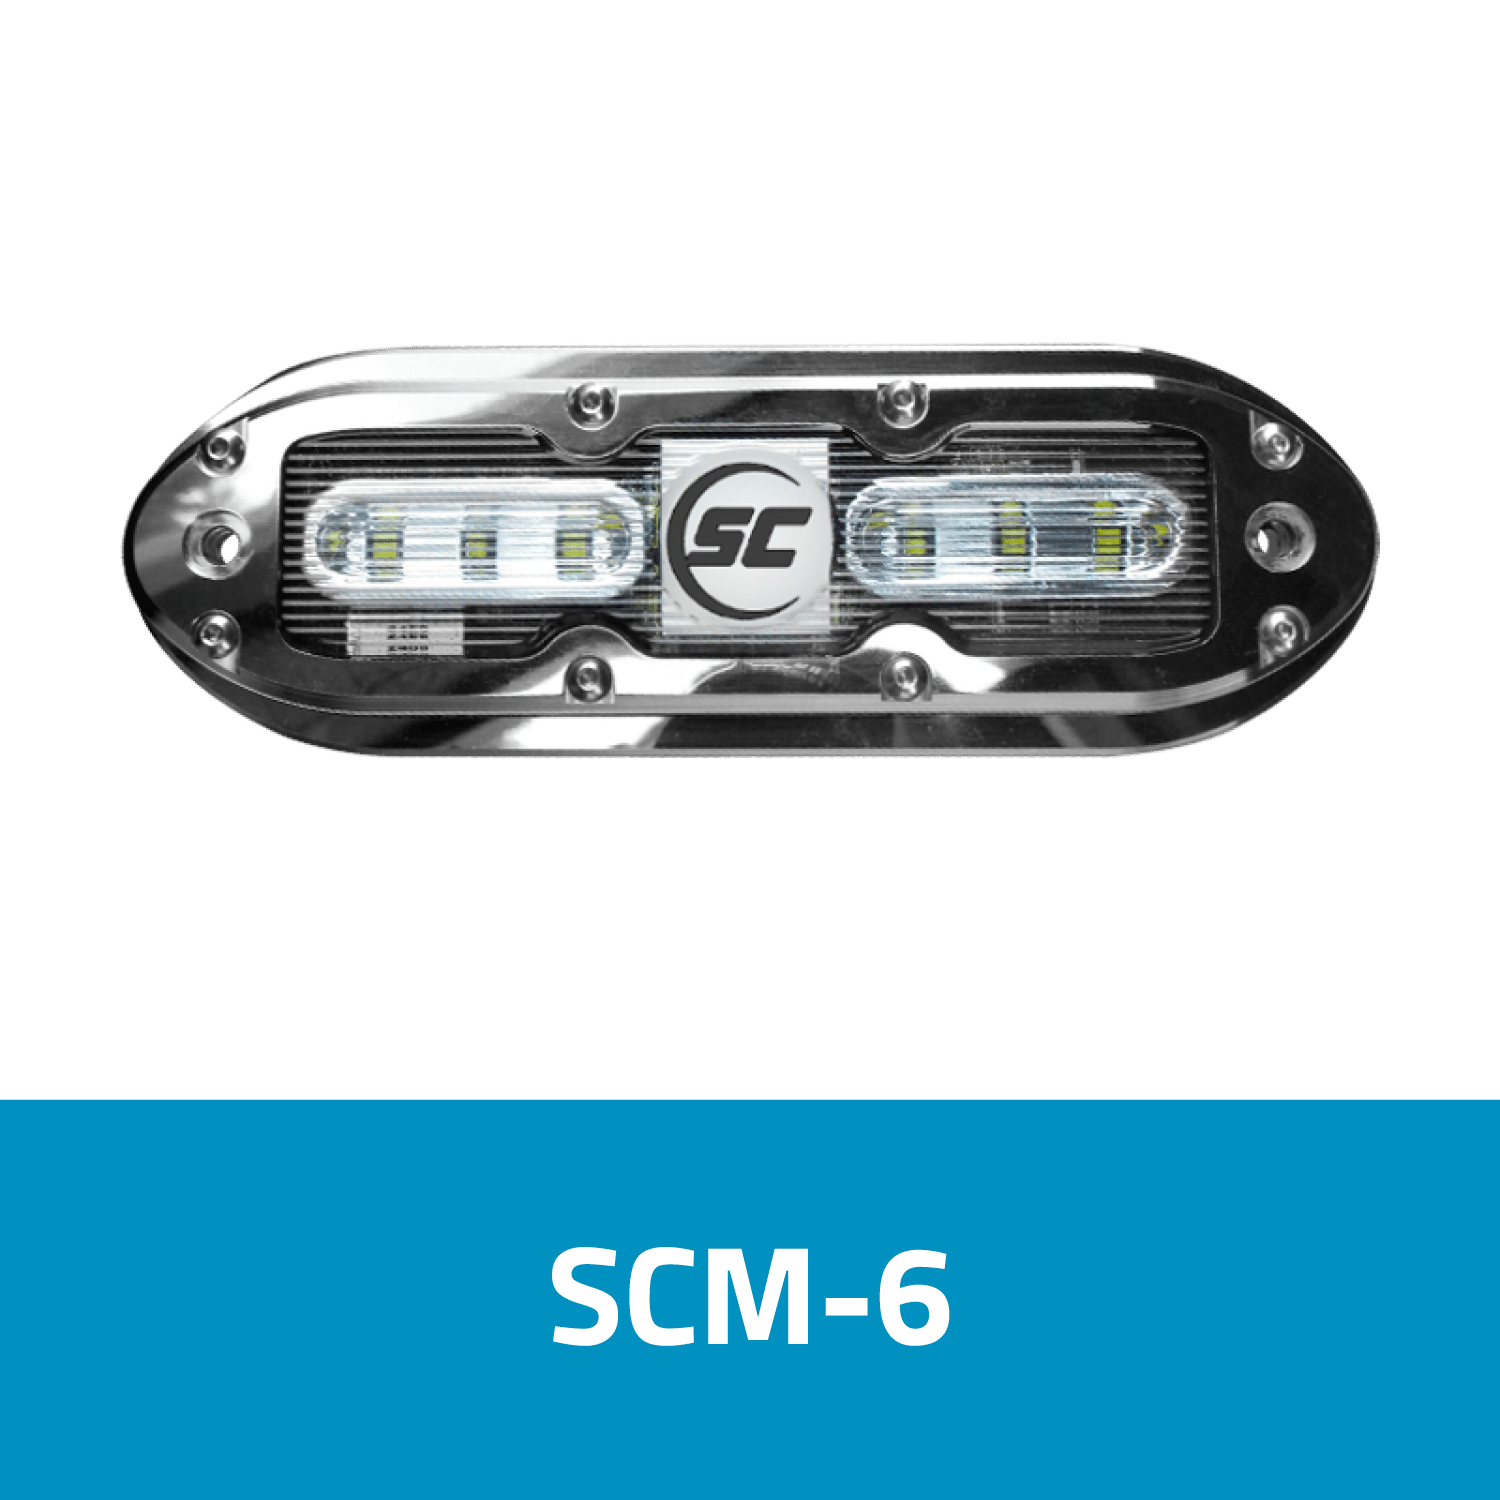 Shadow-Caster Marine LED Lighting Underwater Light SCM-6